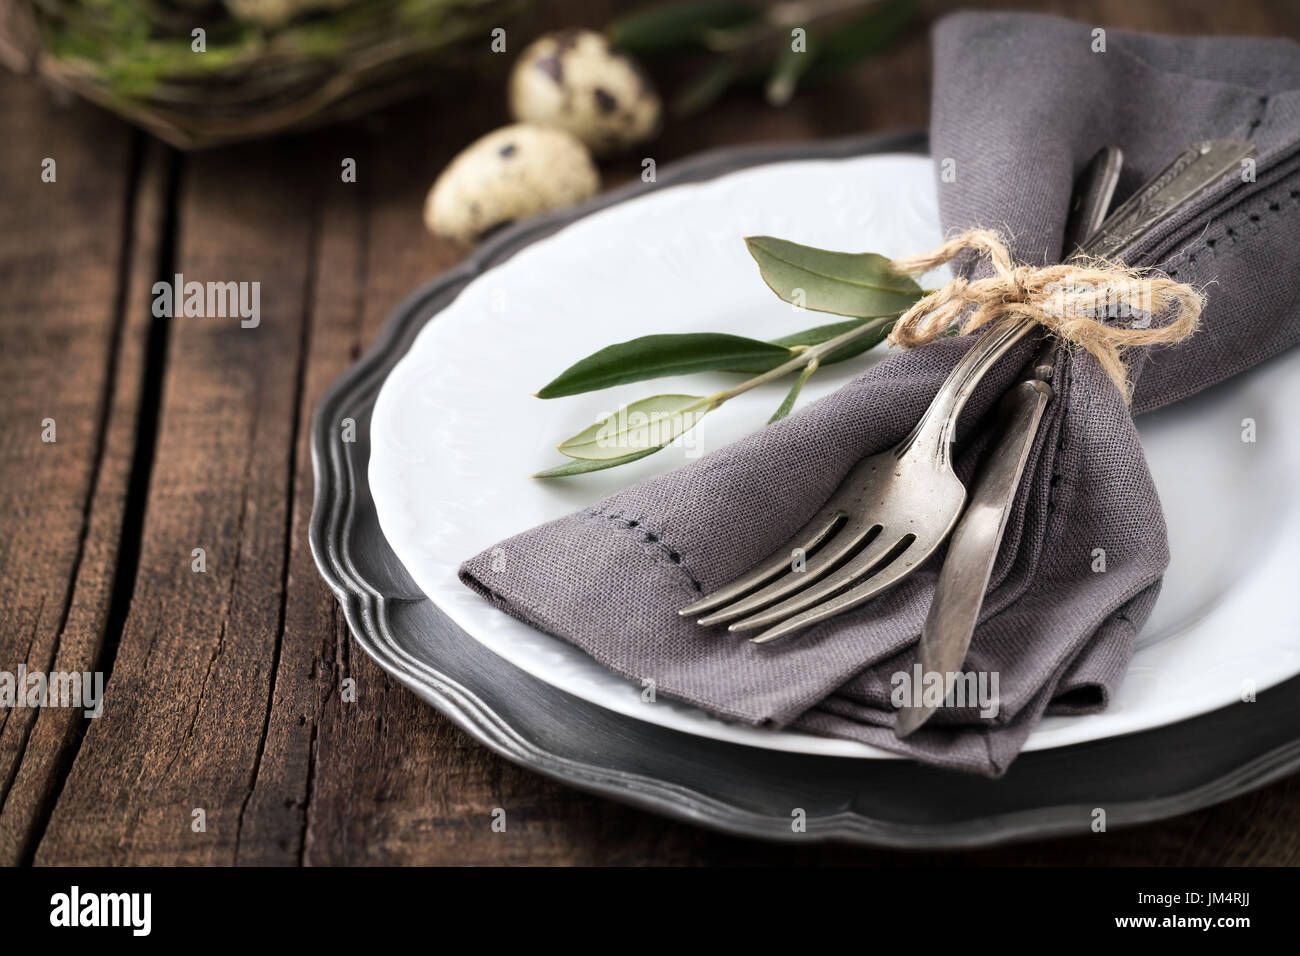 Easter table setting with vintage silverware with an olive branch on ...